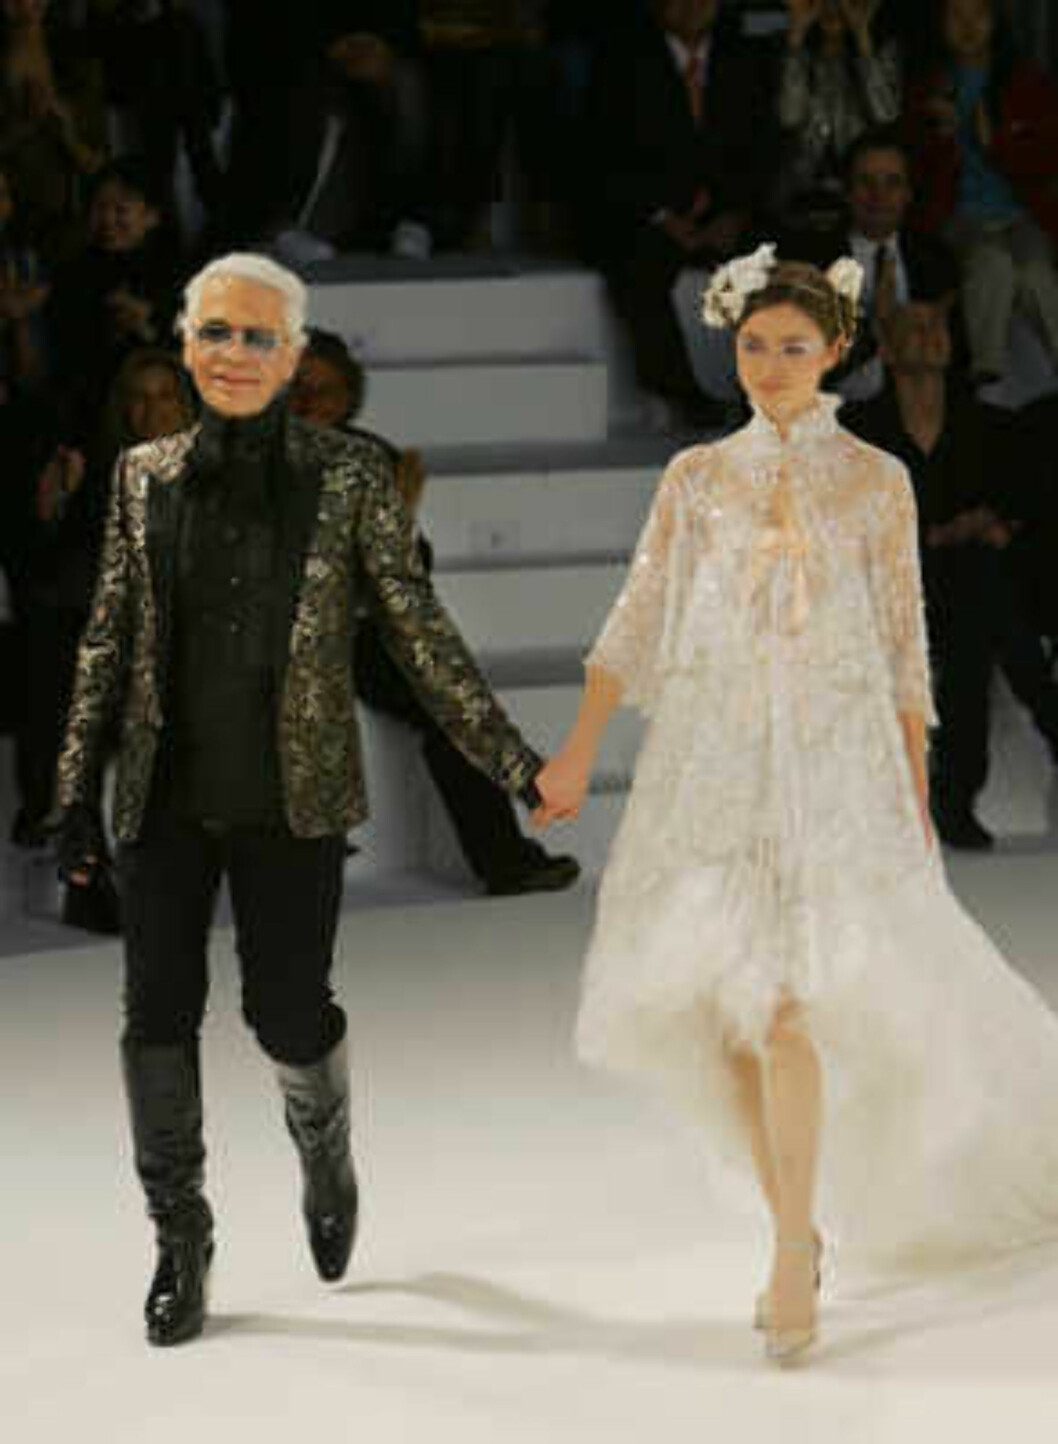 German designer Karl Lagerfeld, left, greets visitors during the Chanel 2006 Spring-Summer Haute Couture fashion show in Hong Kong Friday, March 24, 2006.  (AP Photo/Kin Cheung) Foto: AP